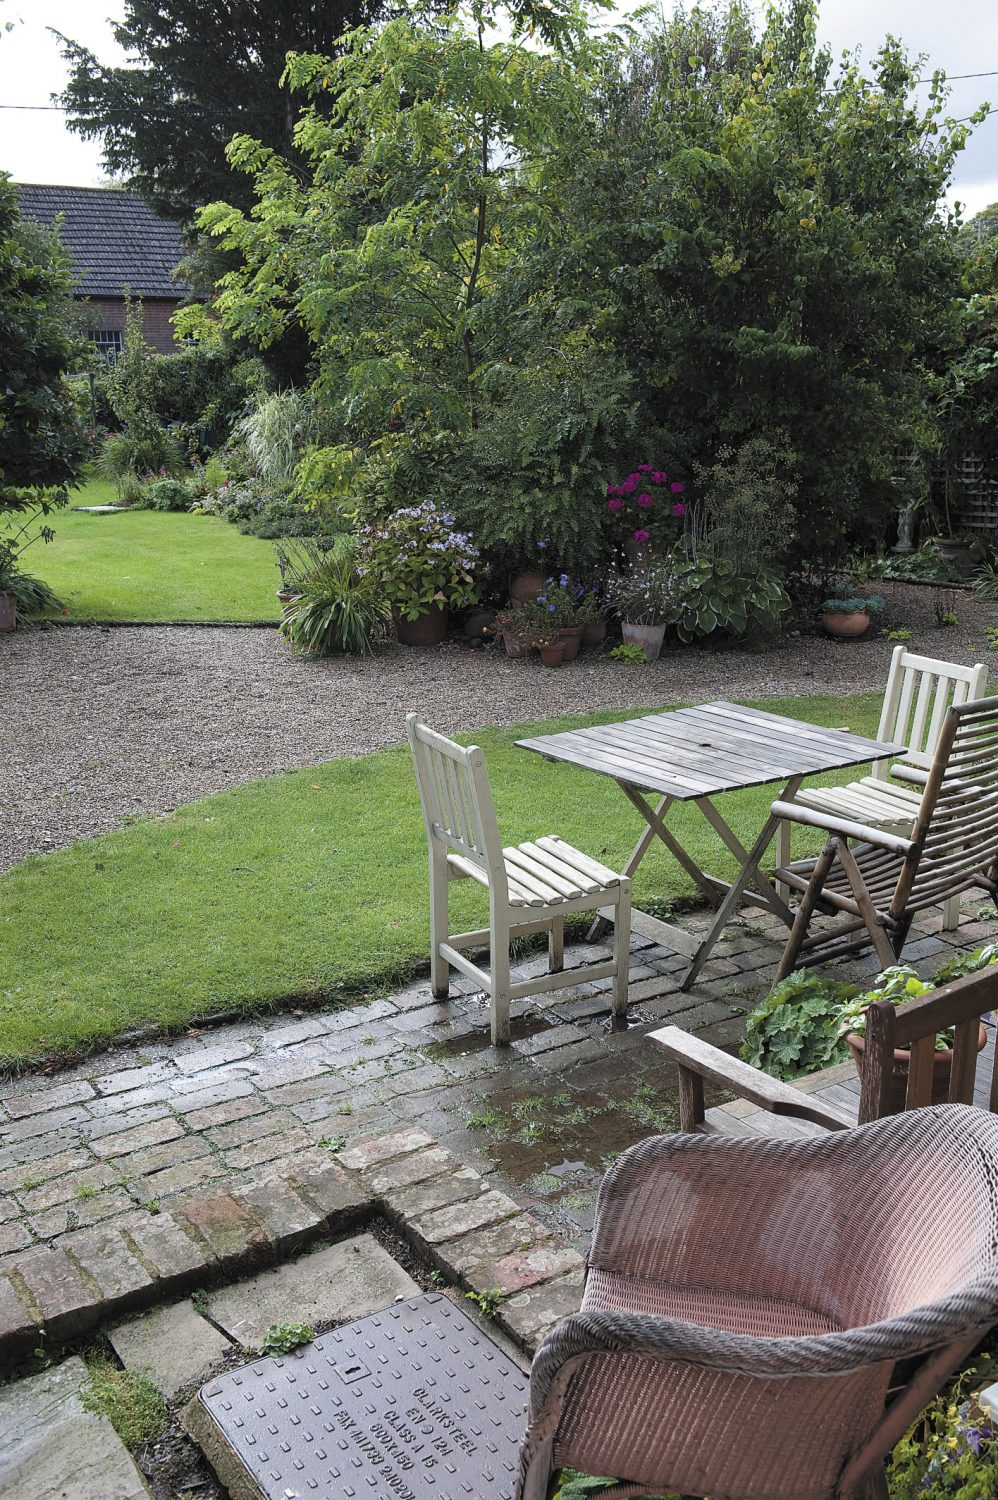 the perfect spot in the garden from which to appreciate the surroundings and enjoy afternoon tea